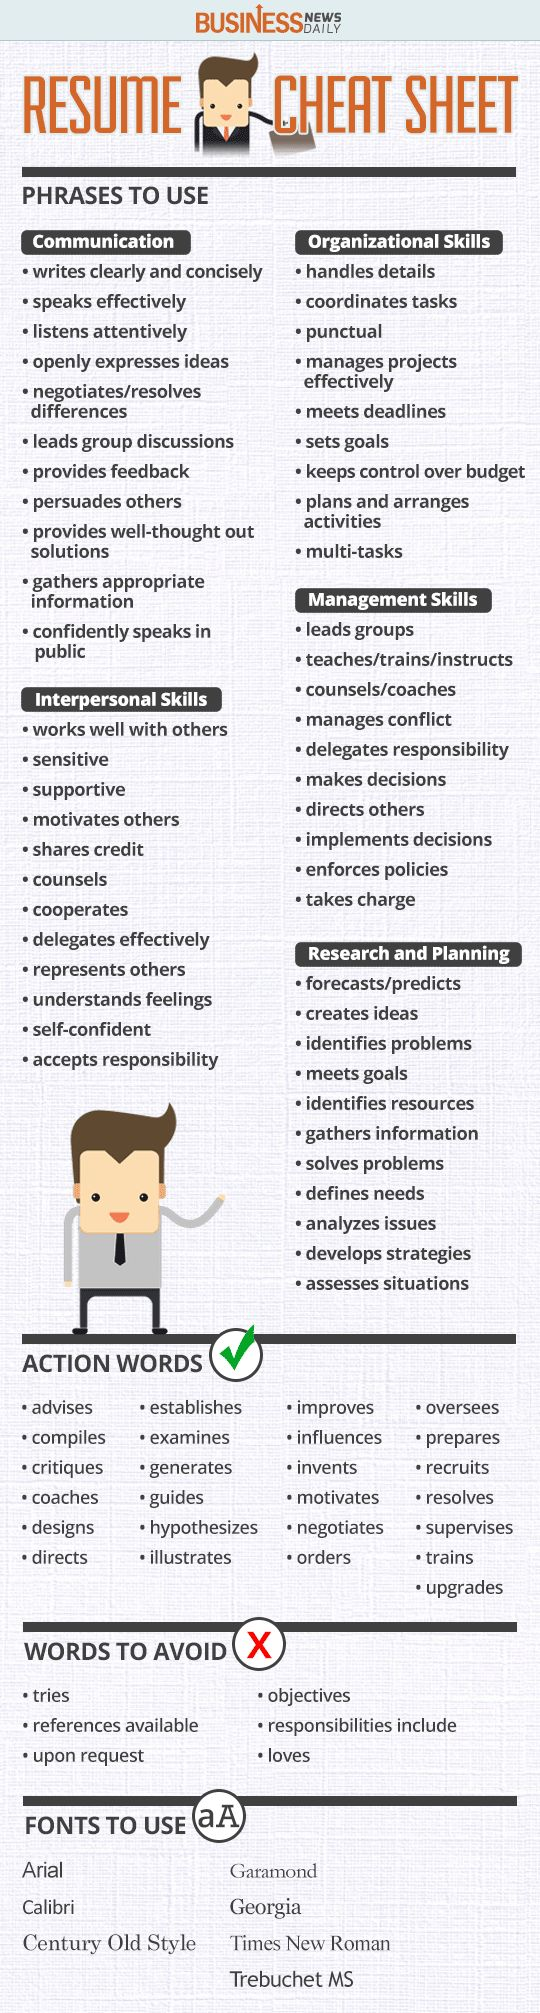 Opposenewapstandardsus  Unique  Ideas About Resume On Pinterest  Cv Format Resume Cv And  With Magnificent Resume Cheat Sheet Infographic Andrews Almost Done With A Complete Unit On Employment Which With Extraordinary Teenage Resumes Also How To Format Education On Resume In Addition Salary On Resume And High School Student Resume Format As Well As College Grad Resume Examples Additionally Resume File Format From Pinterestcom With Opposenewapstandardsus  Magnificent  Ideas About Resume On Pinterest  Cv Format Resume Cv And  With Extraordinary Resume Cheat Sheet Infographic Andrews Almost Done With A Complete Unit On Employment Which And Unique Teenage Resumes Also How To Format Education On Resume In Addition Salary On Resume From Pinterestcom